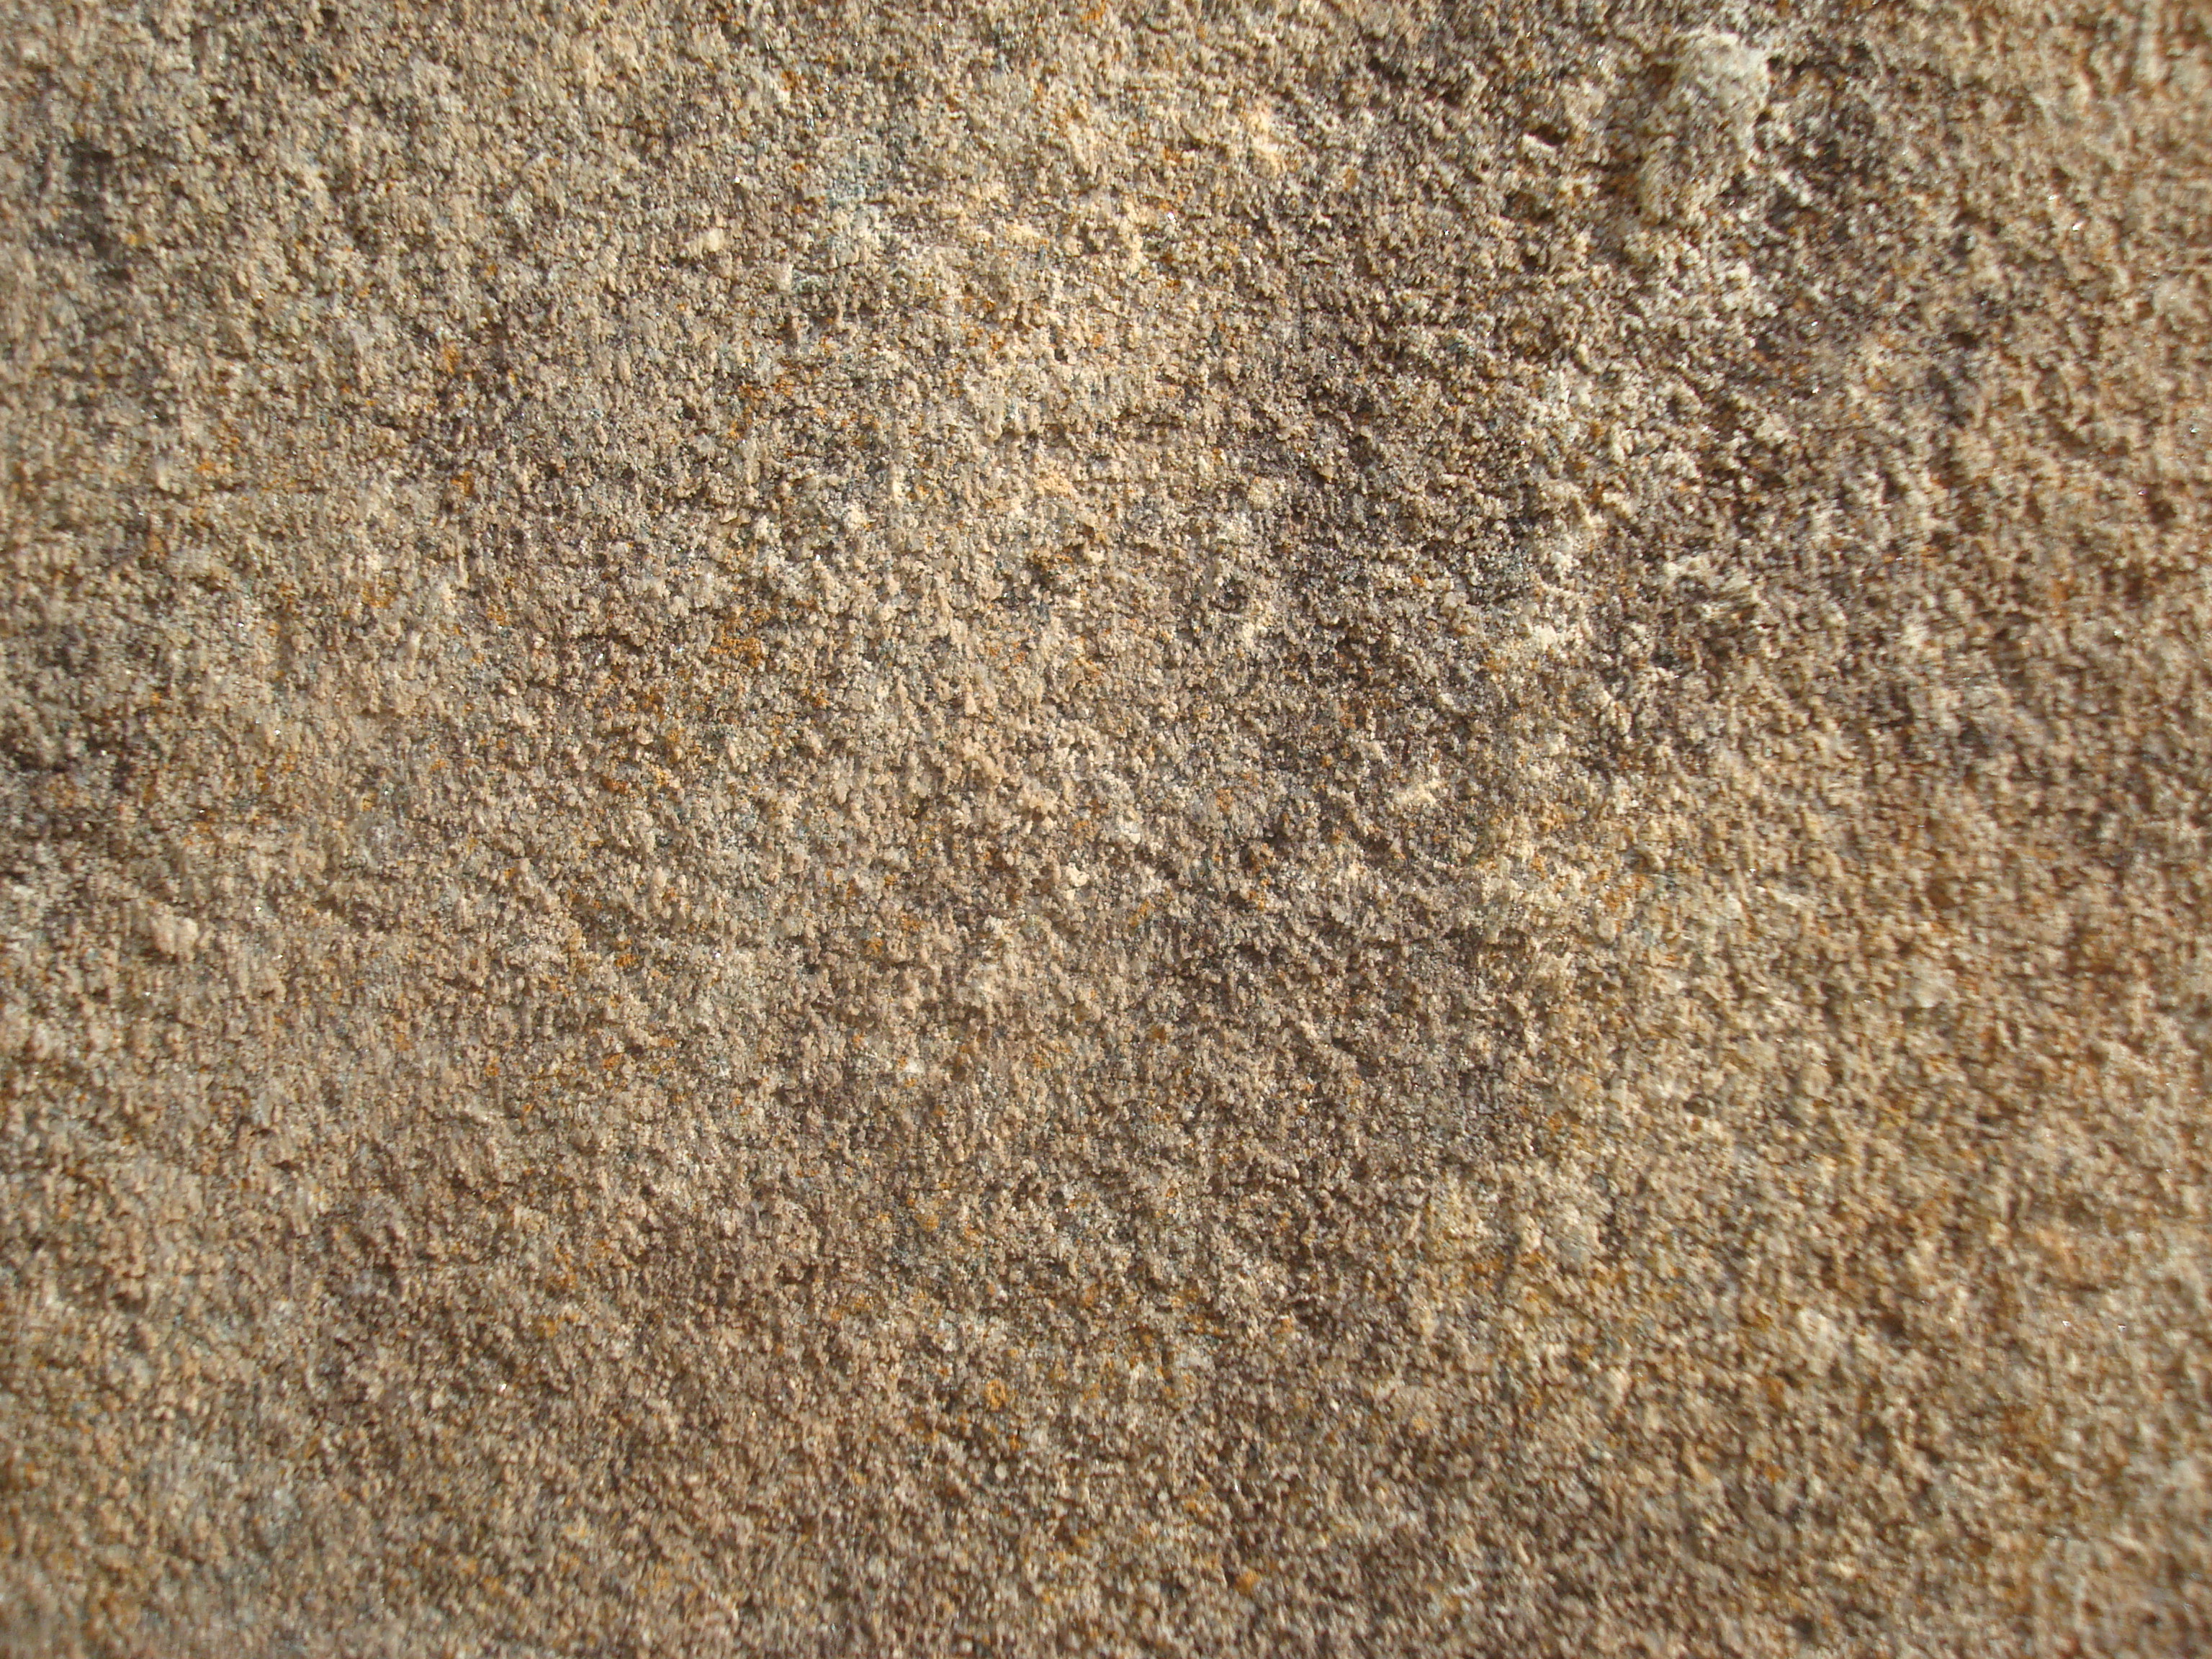 Brown concrete wall texture photo